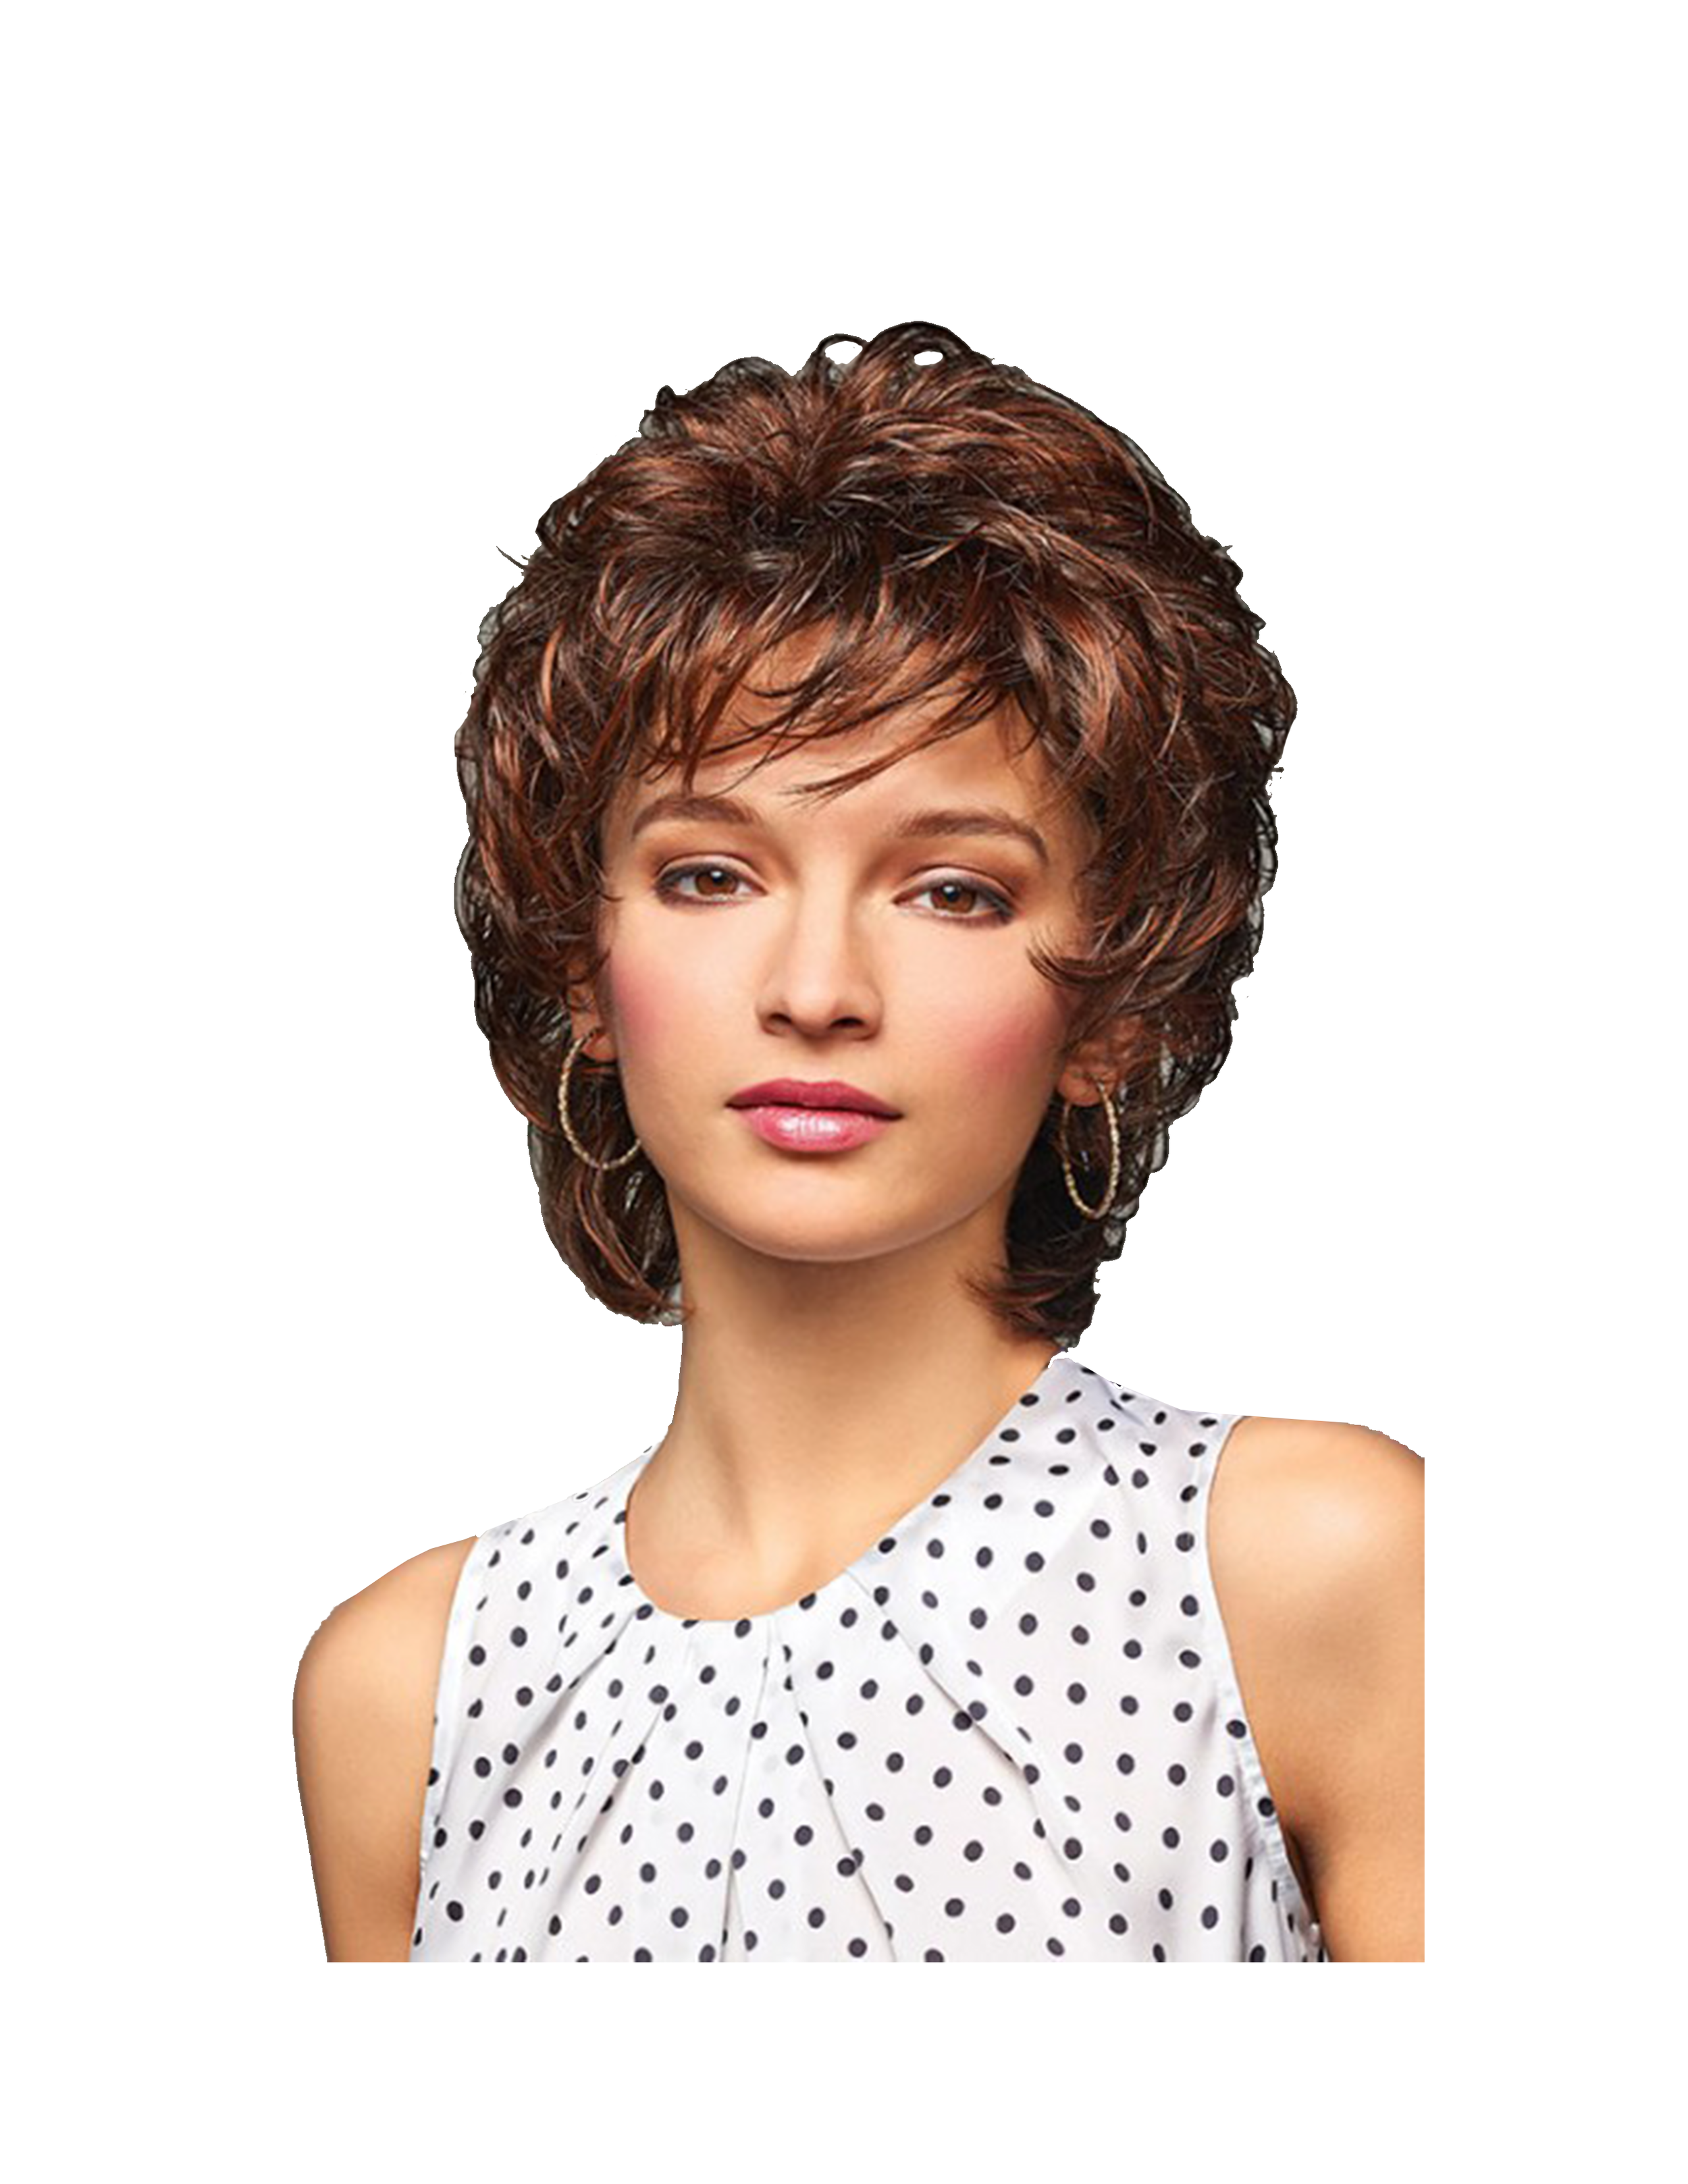 Sonya Is A Short Layered And Fun Wig There Is Body To Style The Wig To Fame The Face Or Style It Off The Face Check Out More By Clicking On The